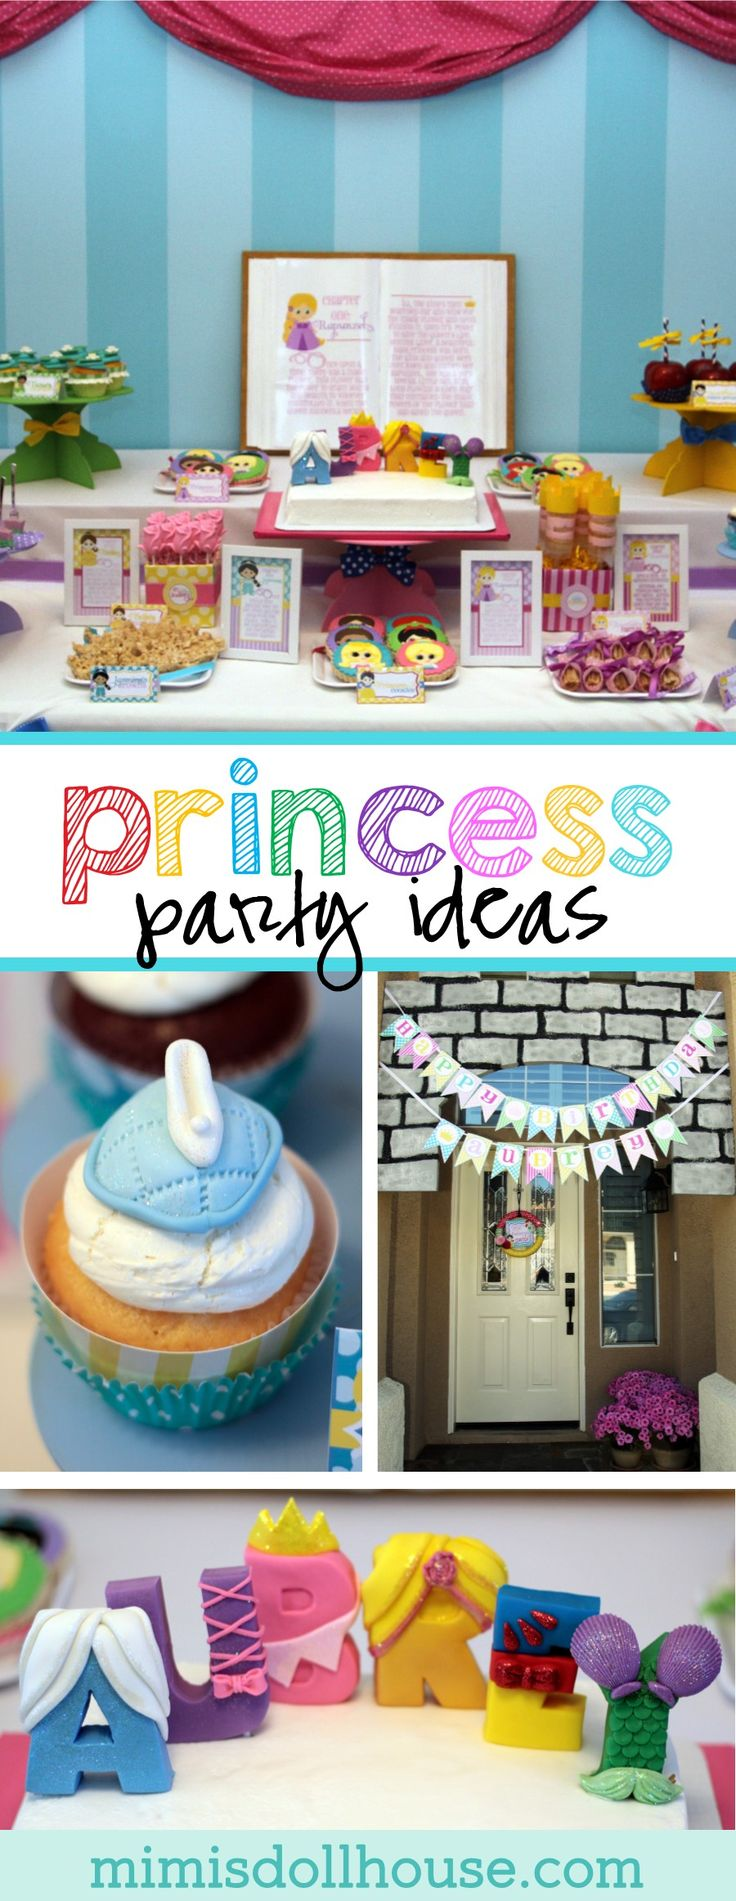 Princess Party: Aubrey's 4th Birthday Storybook Celebration (Part 1).  Bibbity Bobbity Boo!  How about a Storybook Princess Party?  I'm sharing the first part of my Disney inspired princess birthday party today.  Be sure to check out the Castle Tutorial, Crown Tutorial, Princess Party Activities and Storybook Tutorial that coordinate with this design. via @mimisdollhouse